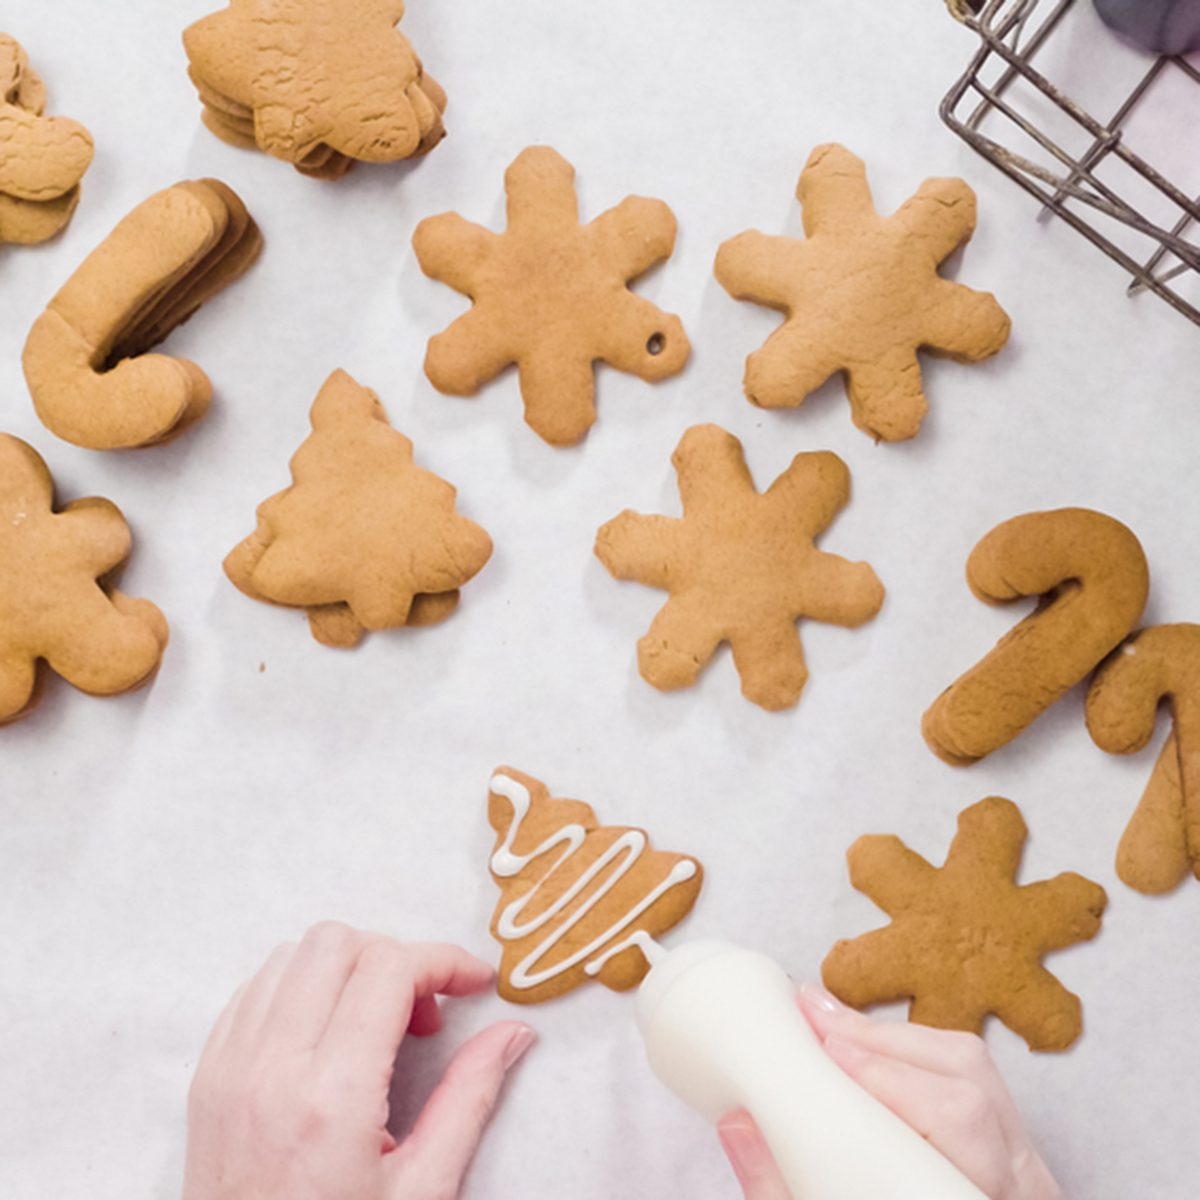 Decorating gingerbread cookies with royal icing for Christmas.